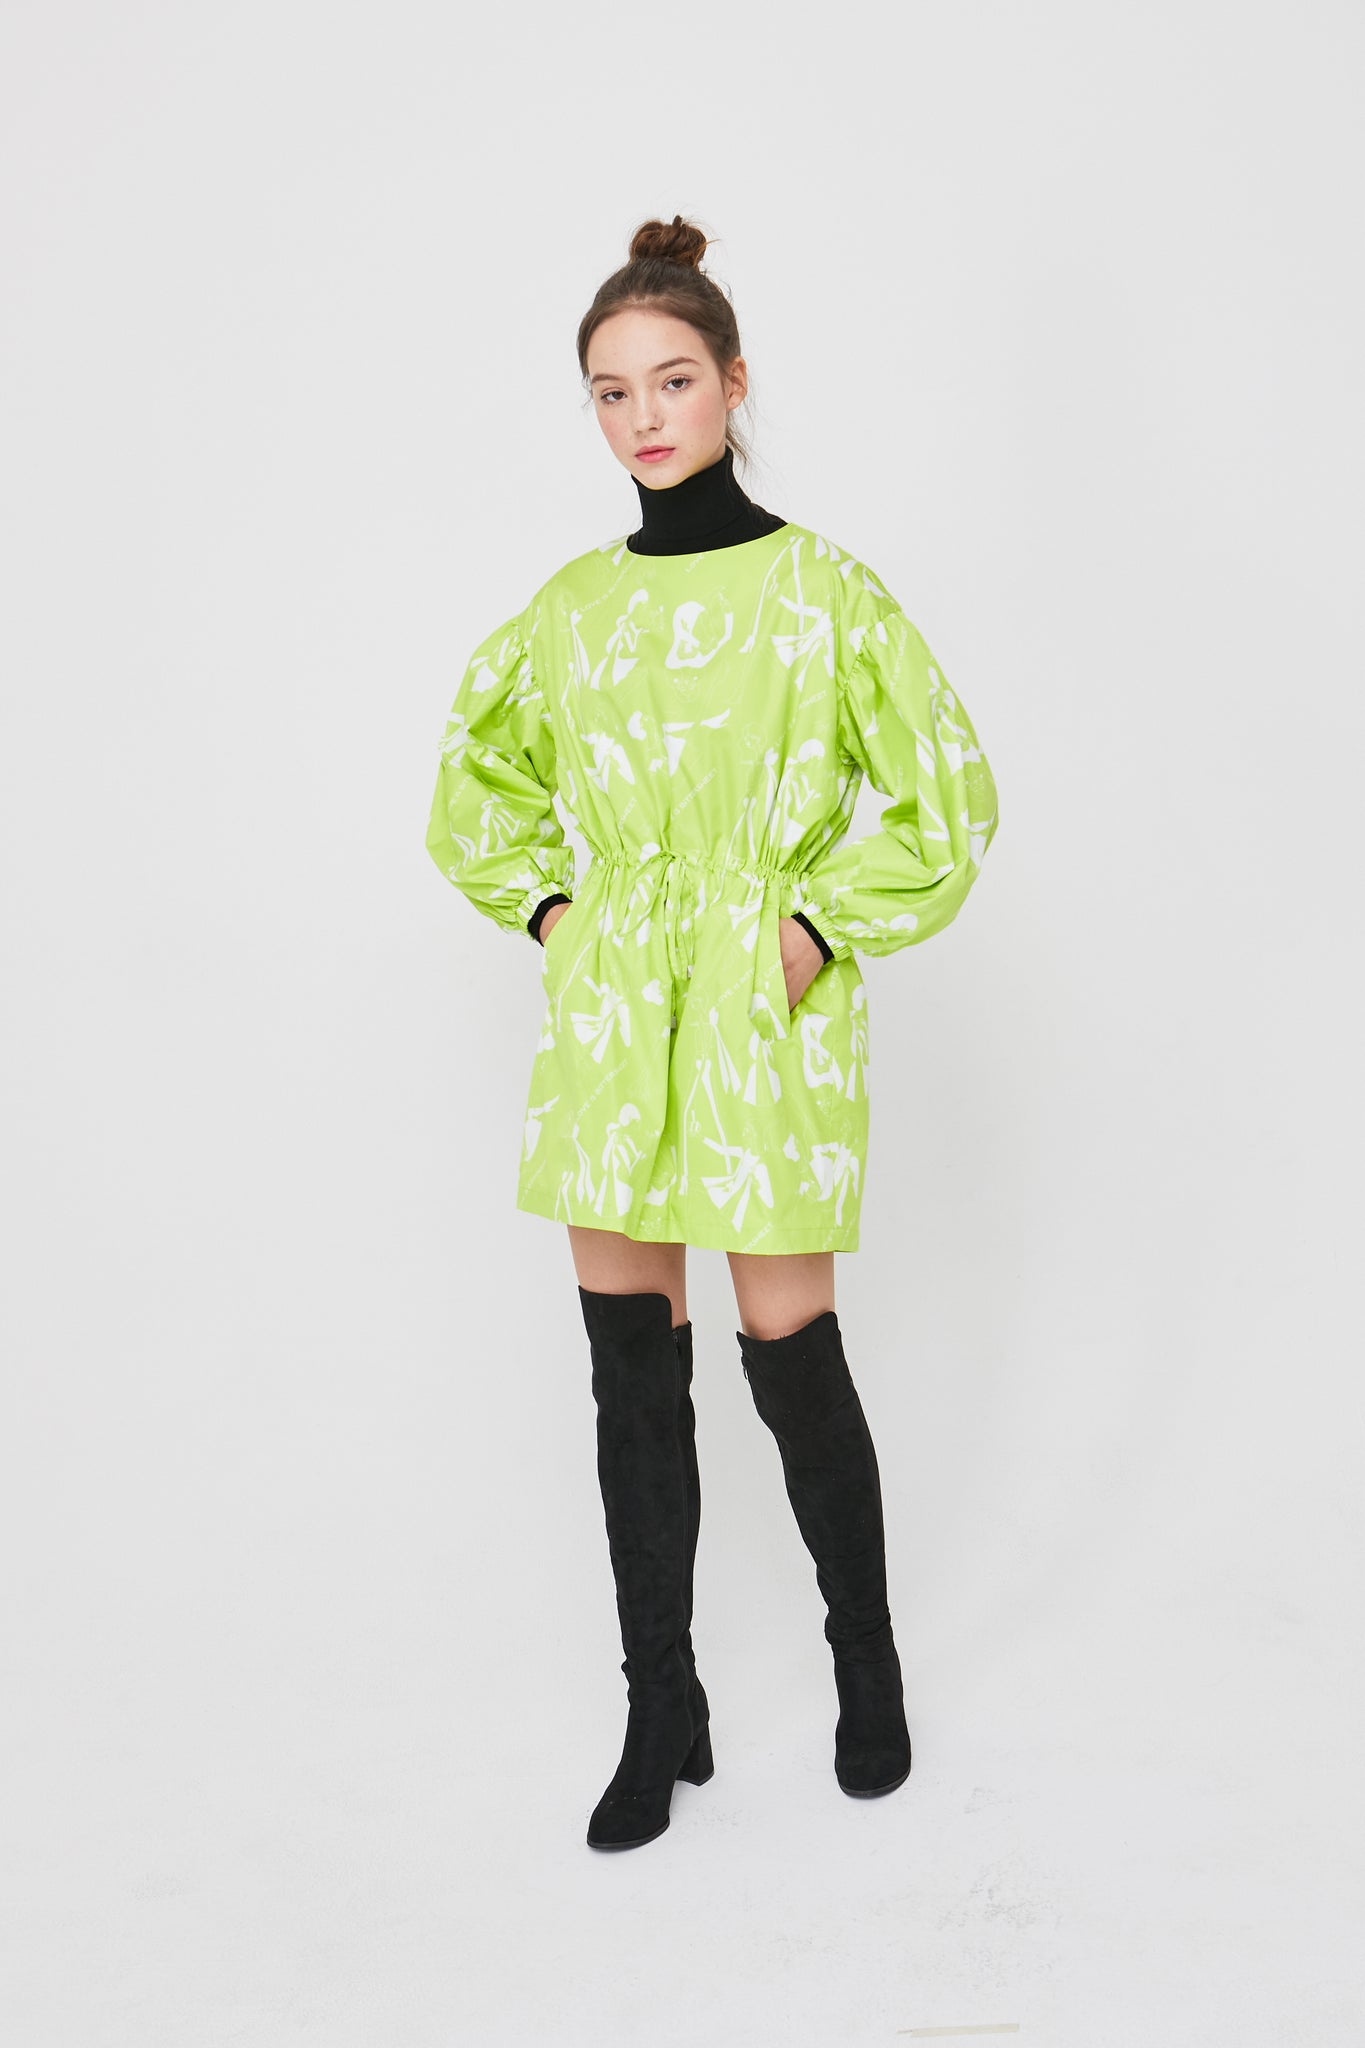 Love is Bittersweet Dress- Neon Lime